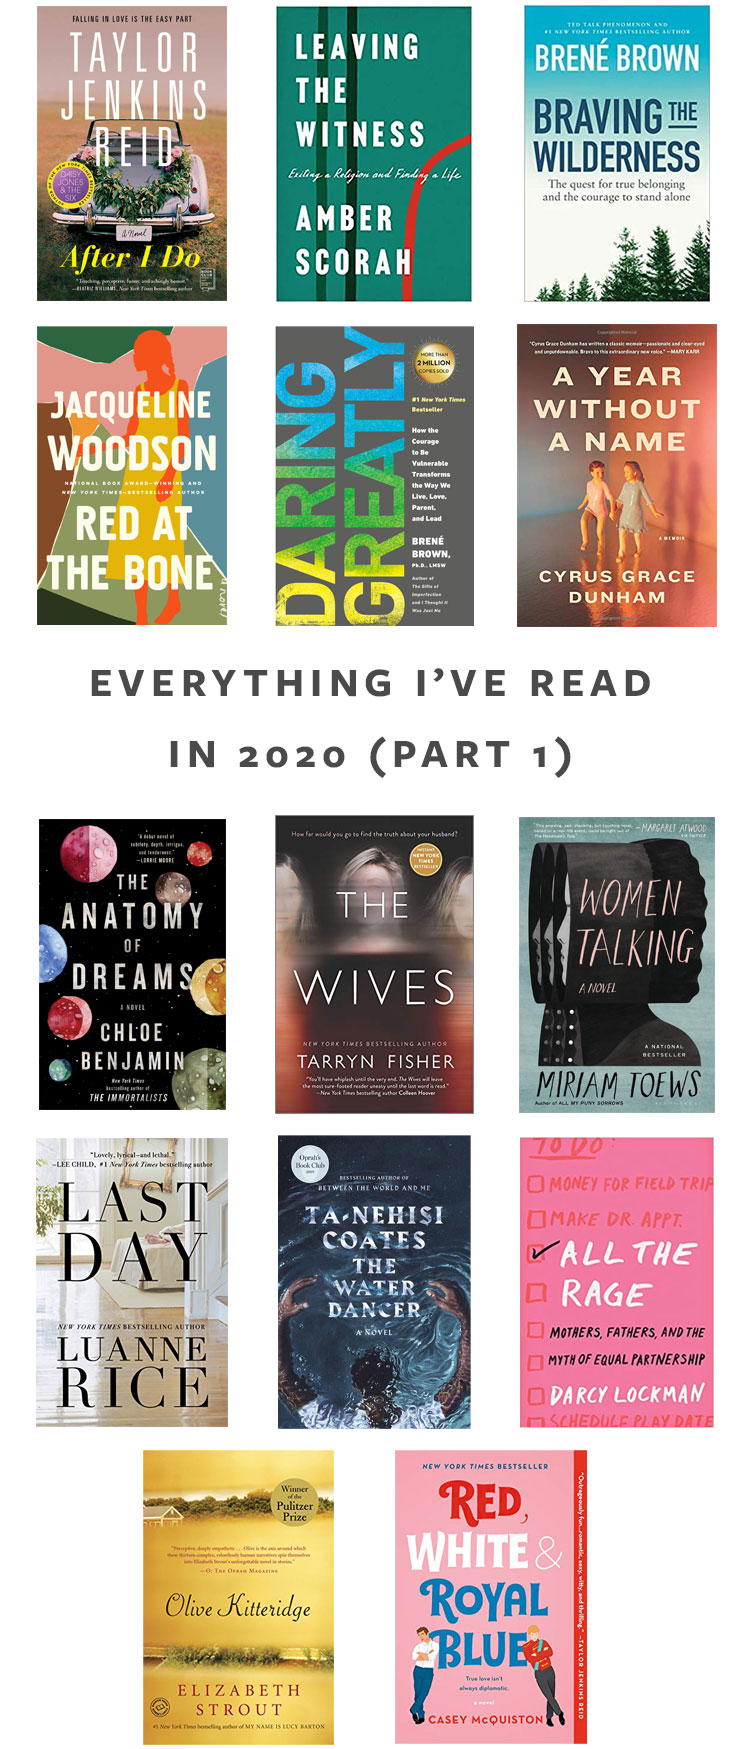 Everything I Read in 2020 Part 1 + My Book Recommendations for What You Should Read Next while sheltering in place #reading #bookreport #mustread #books #bookrecommendations #whattoread #booksuggestions